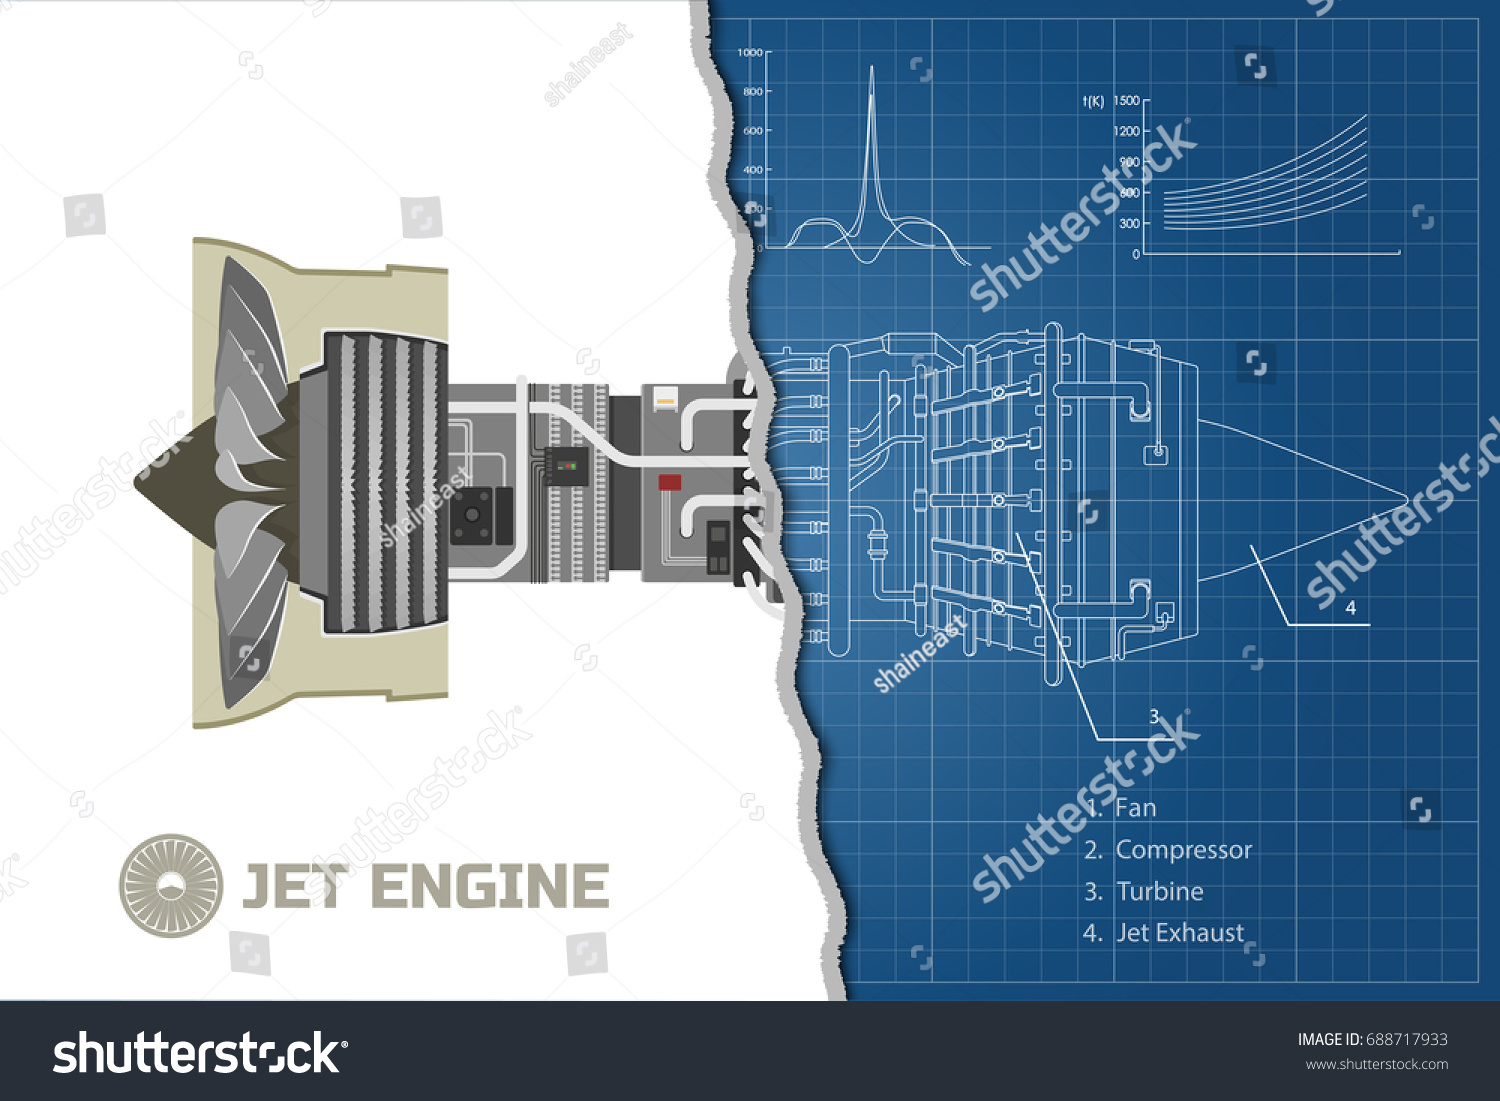 Jet Engine Airplane Outline Style Industrial Stock Vector Royalty Schematic Of Aerospase Blueprint Part The Aircraft